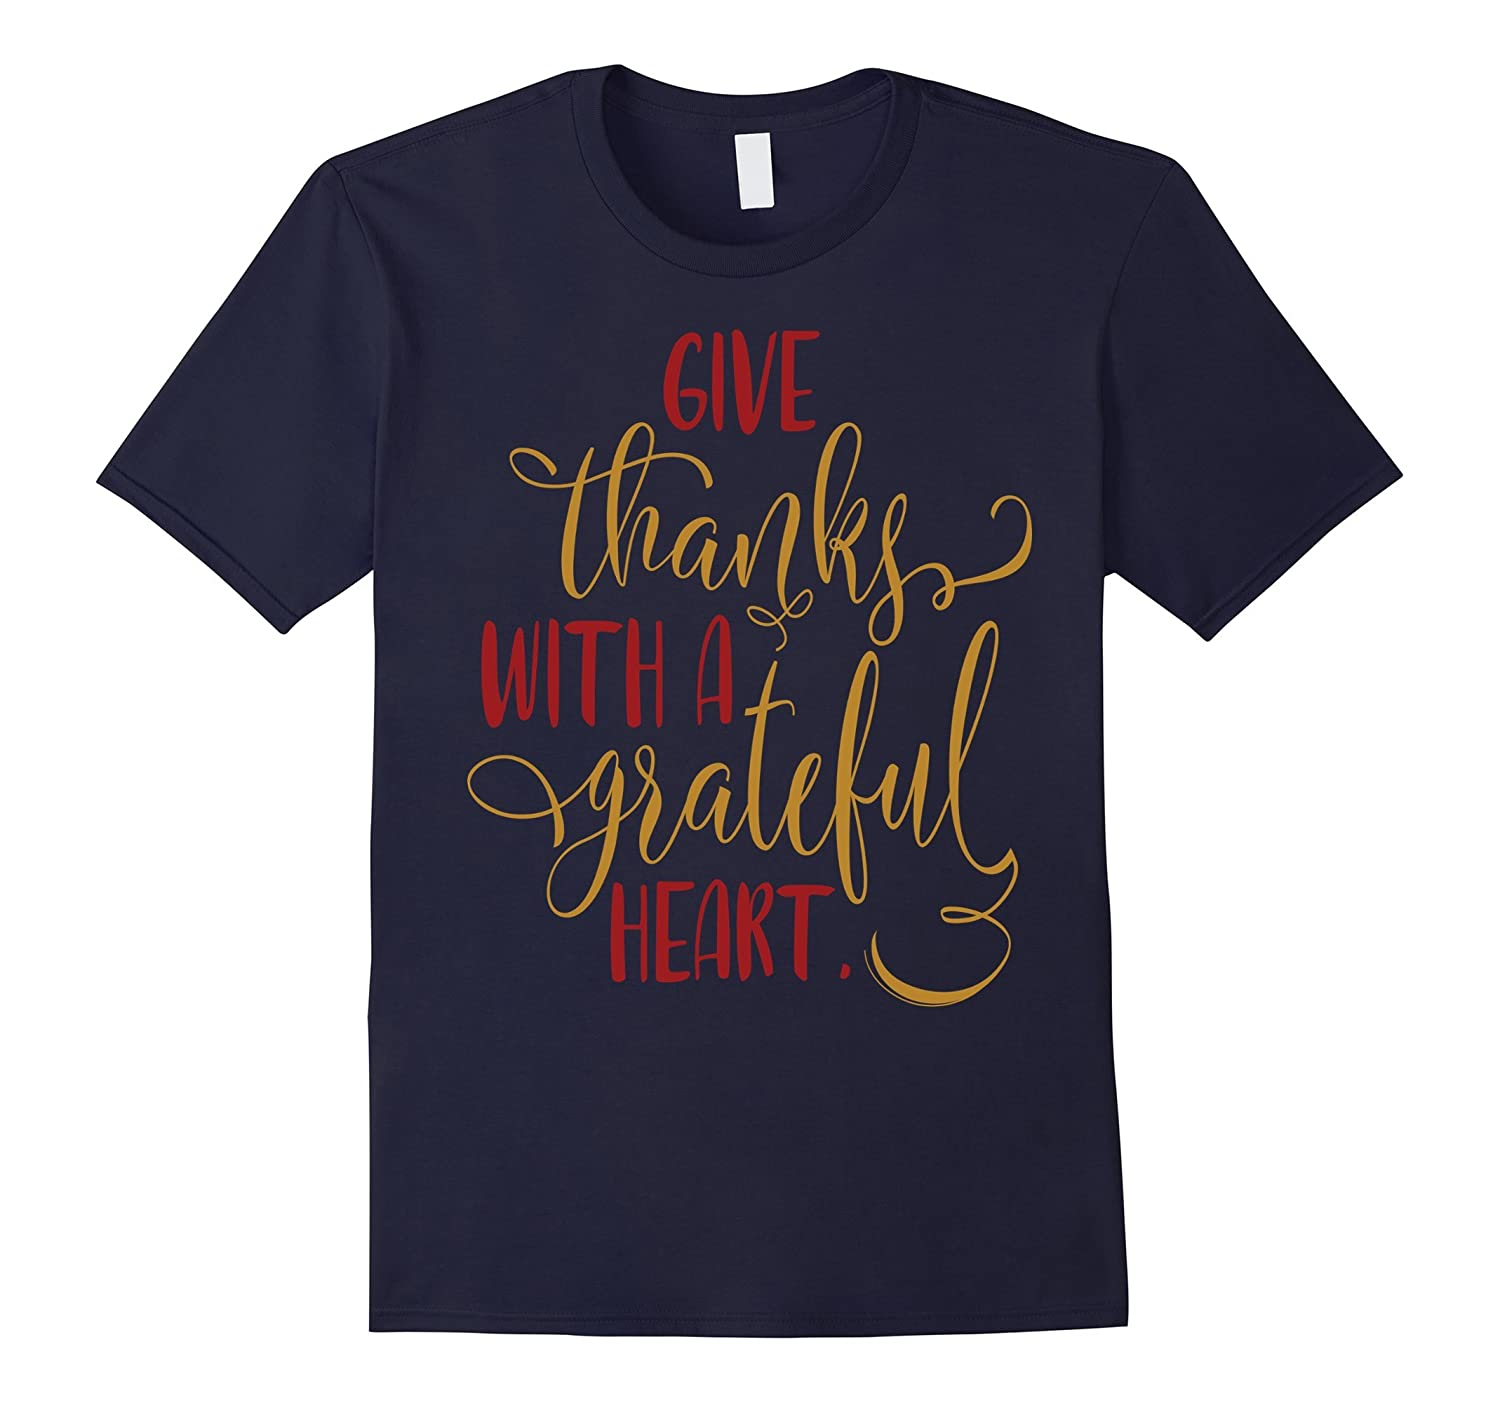 Autumn Shirt Thanksgiving Give Thanks With Grateful Heart-Art